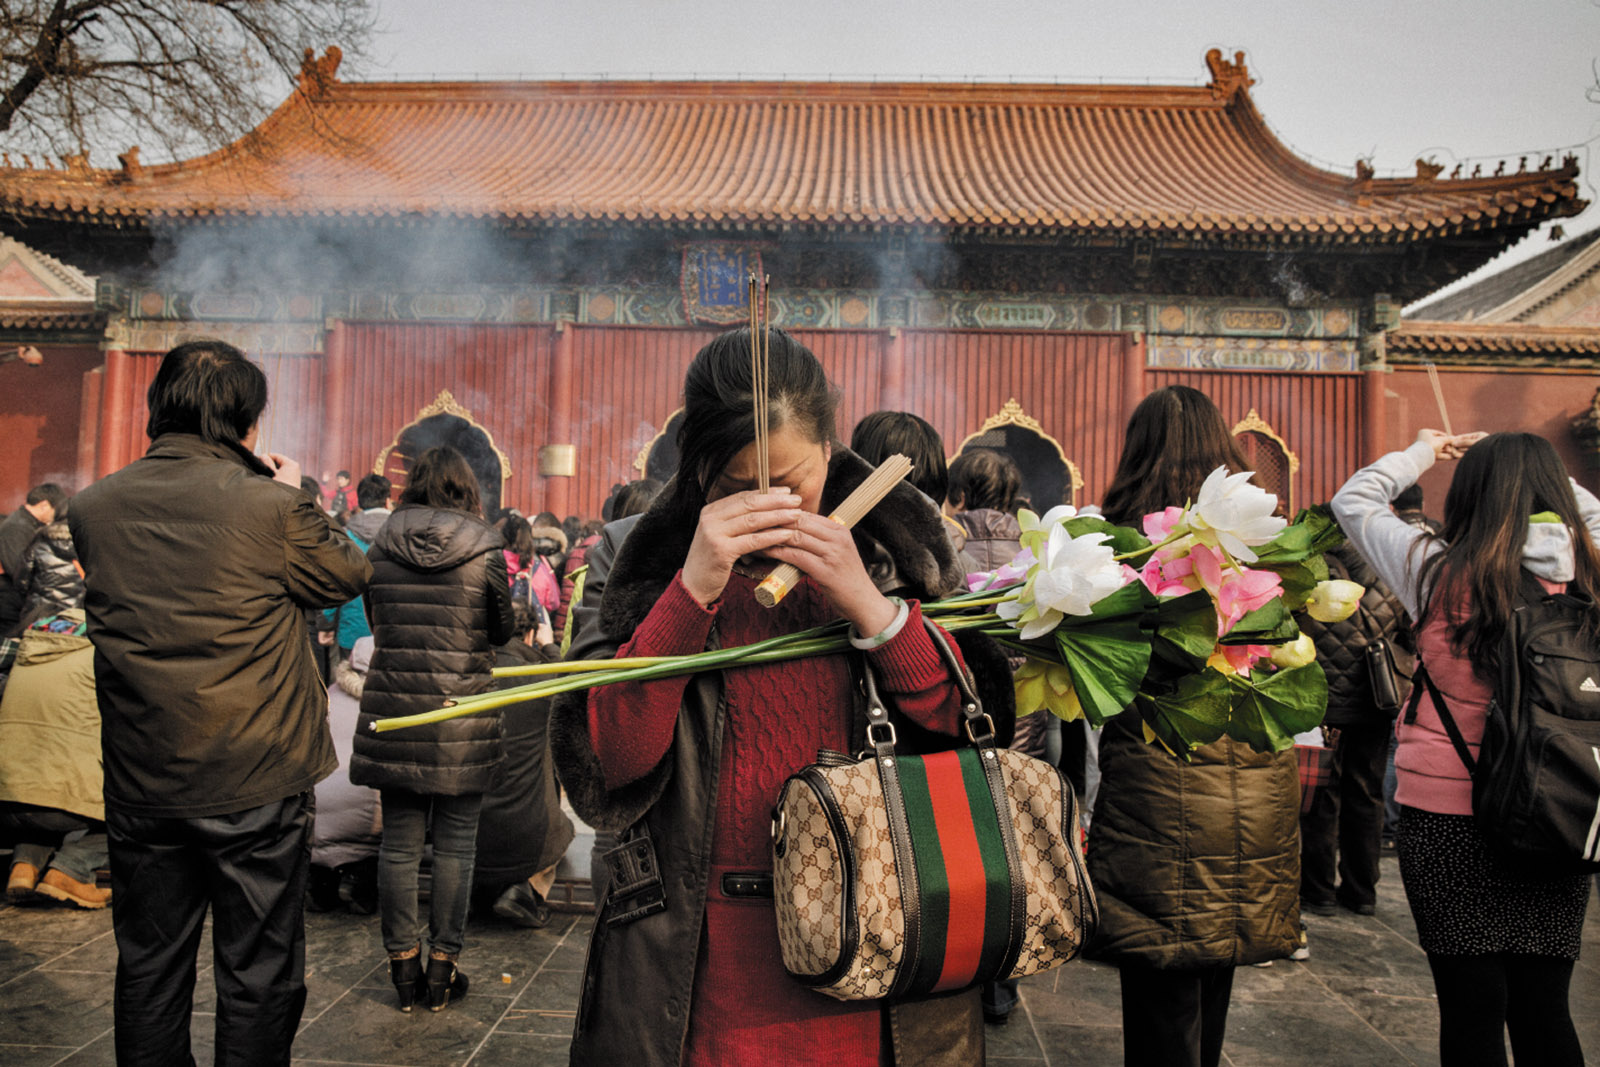 Han Chinese devotees offer incense at the Lama Tibetan Buddhist temple in Beijing on a Sunday morning earlier this year. | Source: Time.com